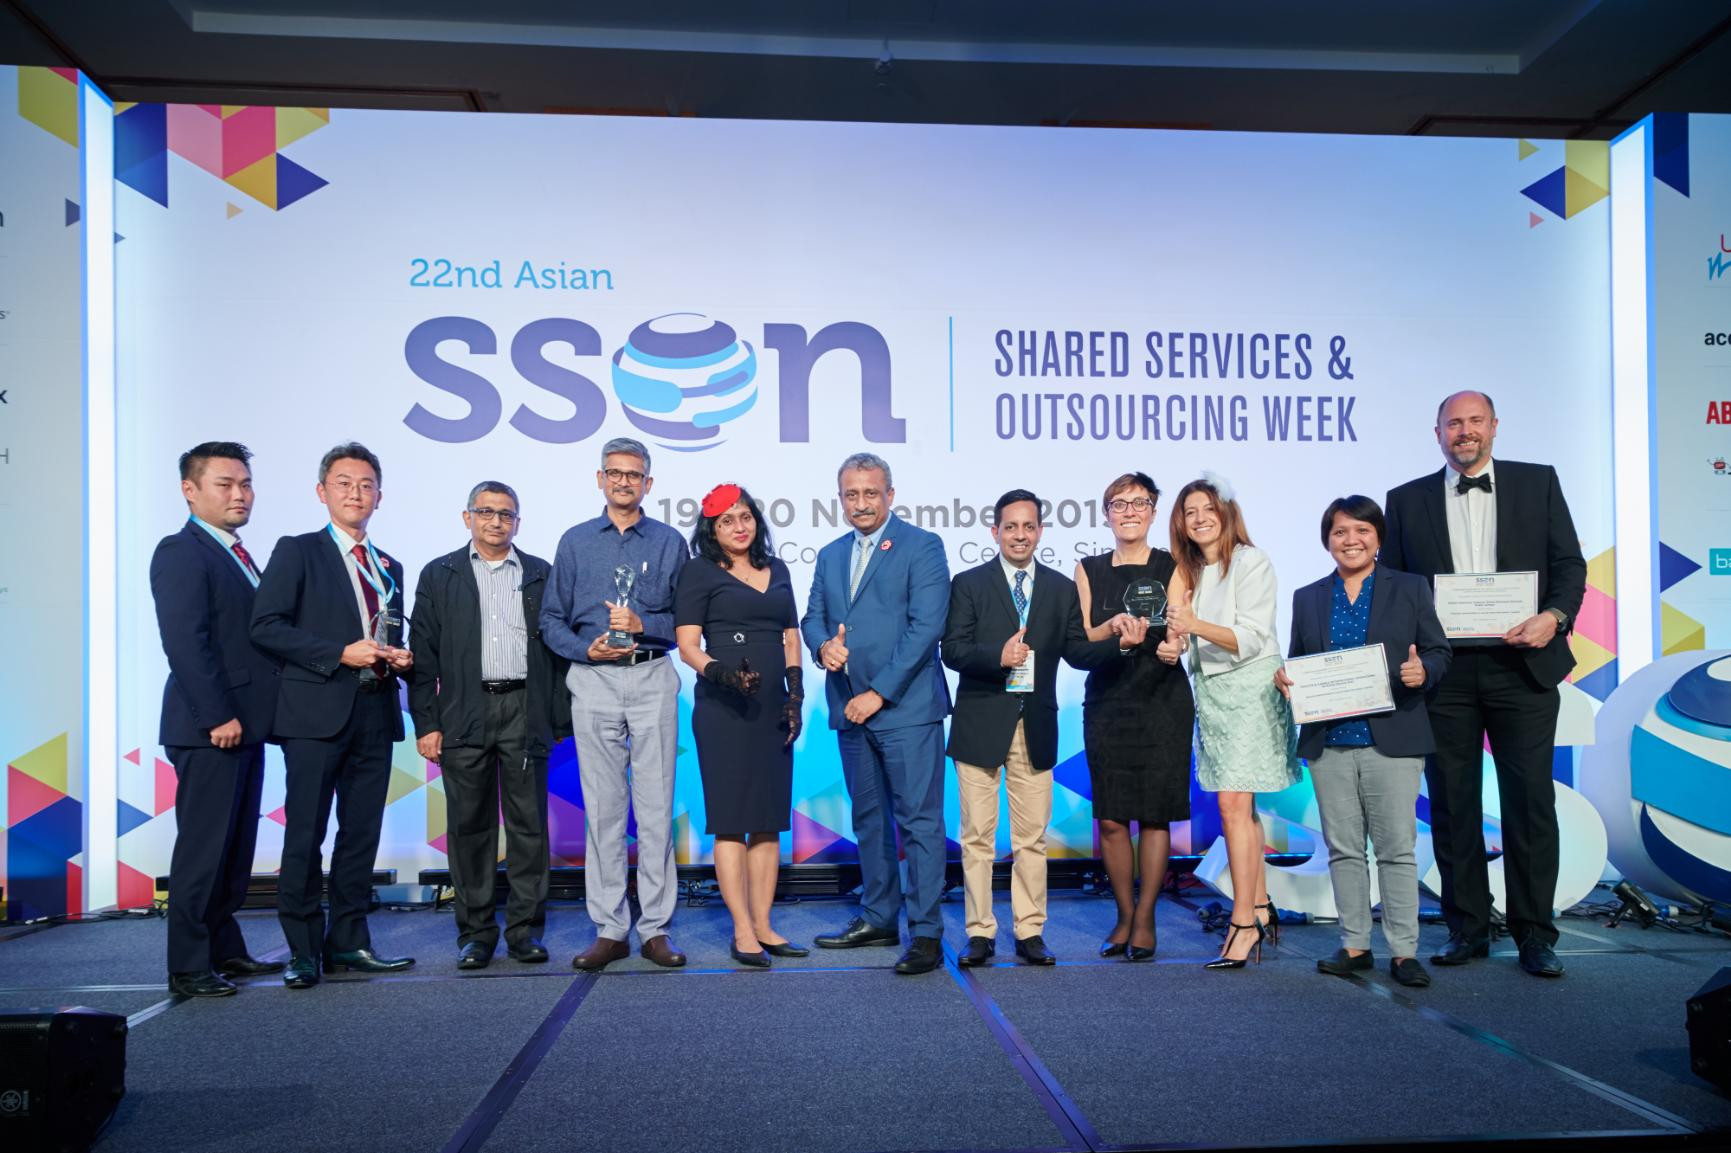 Asian shared services and outsourcing week 2021